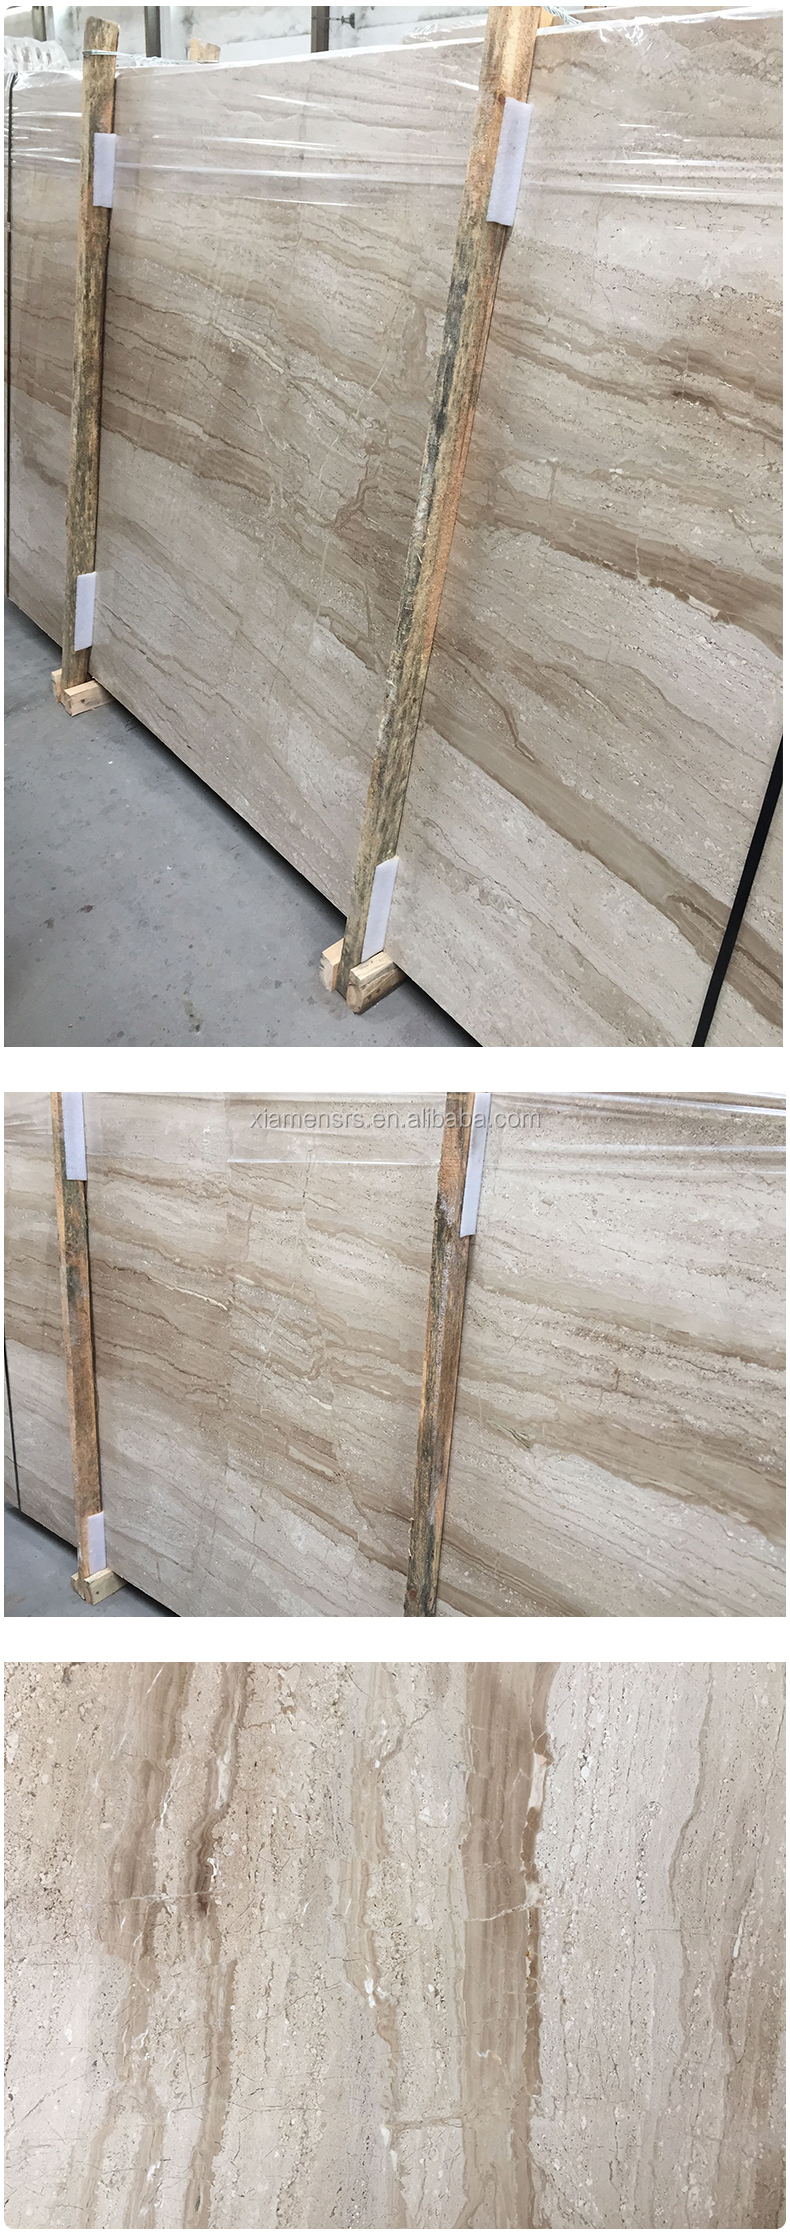 Golden Tino Dino Beige Marble for Wall Tile or Flooring Tile